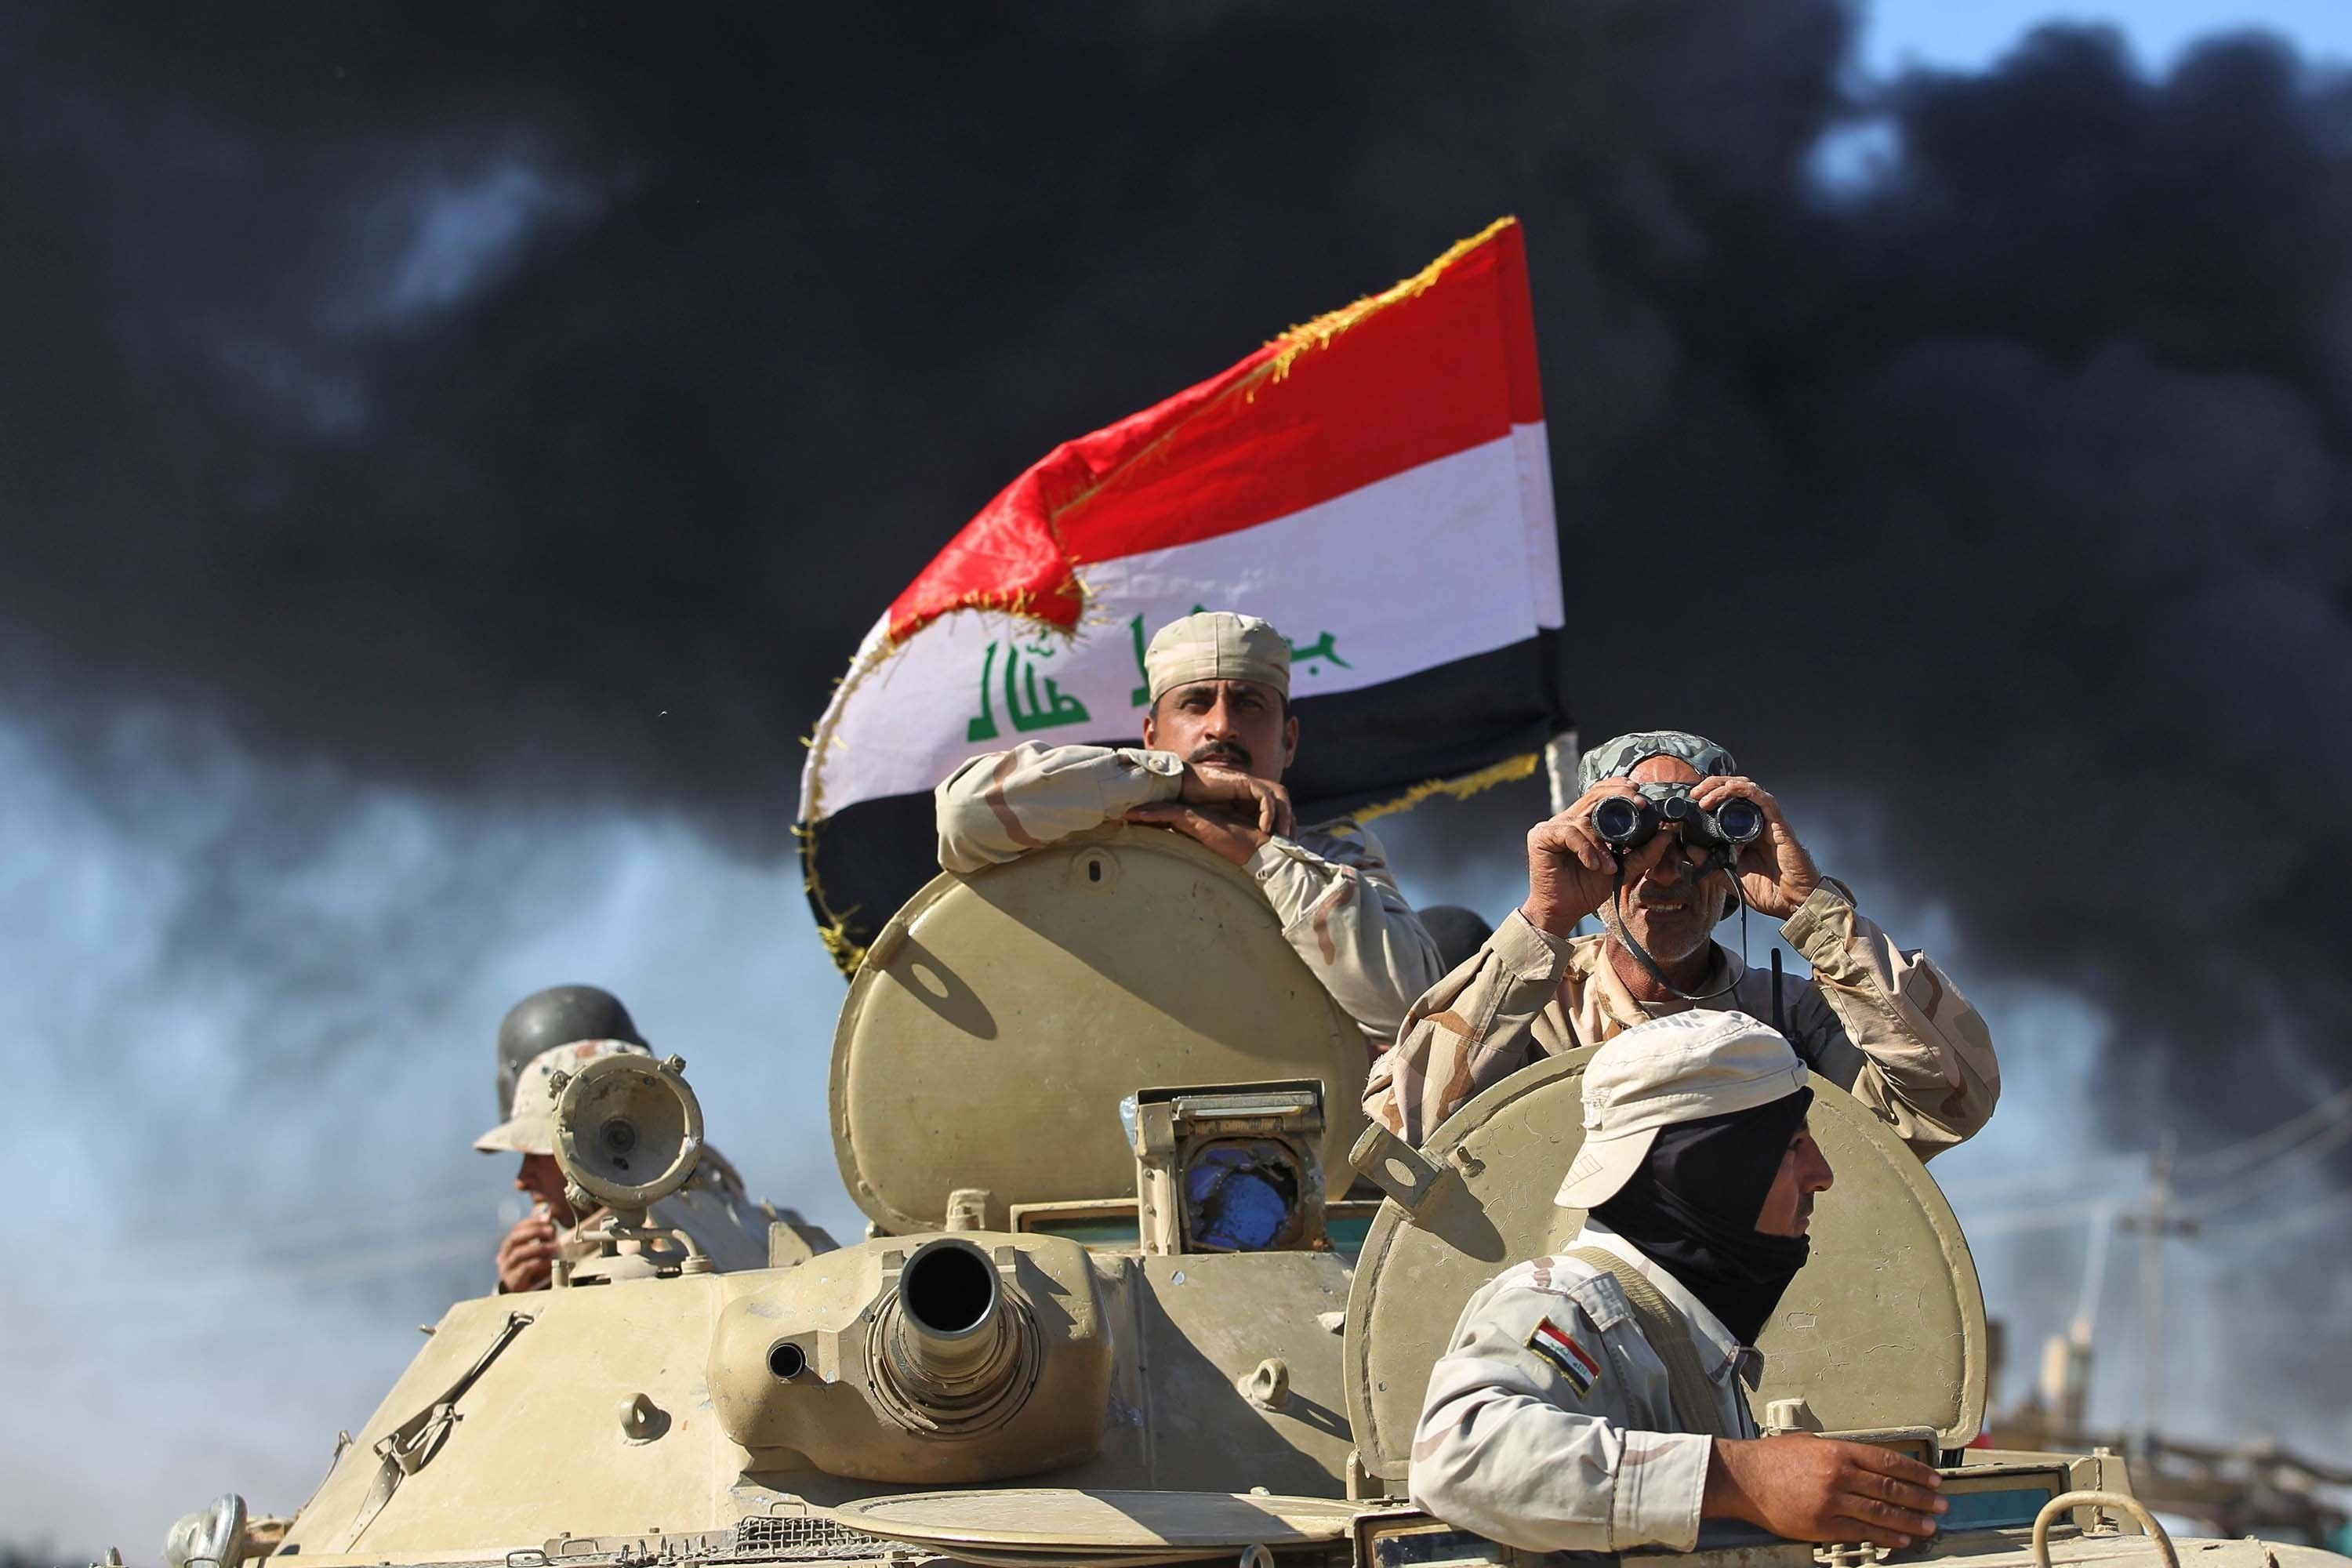 Iraqi Forces Say Theyve Recaptured Hawija City Center From ISIS